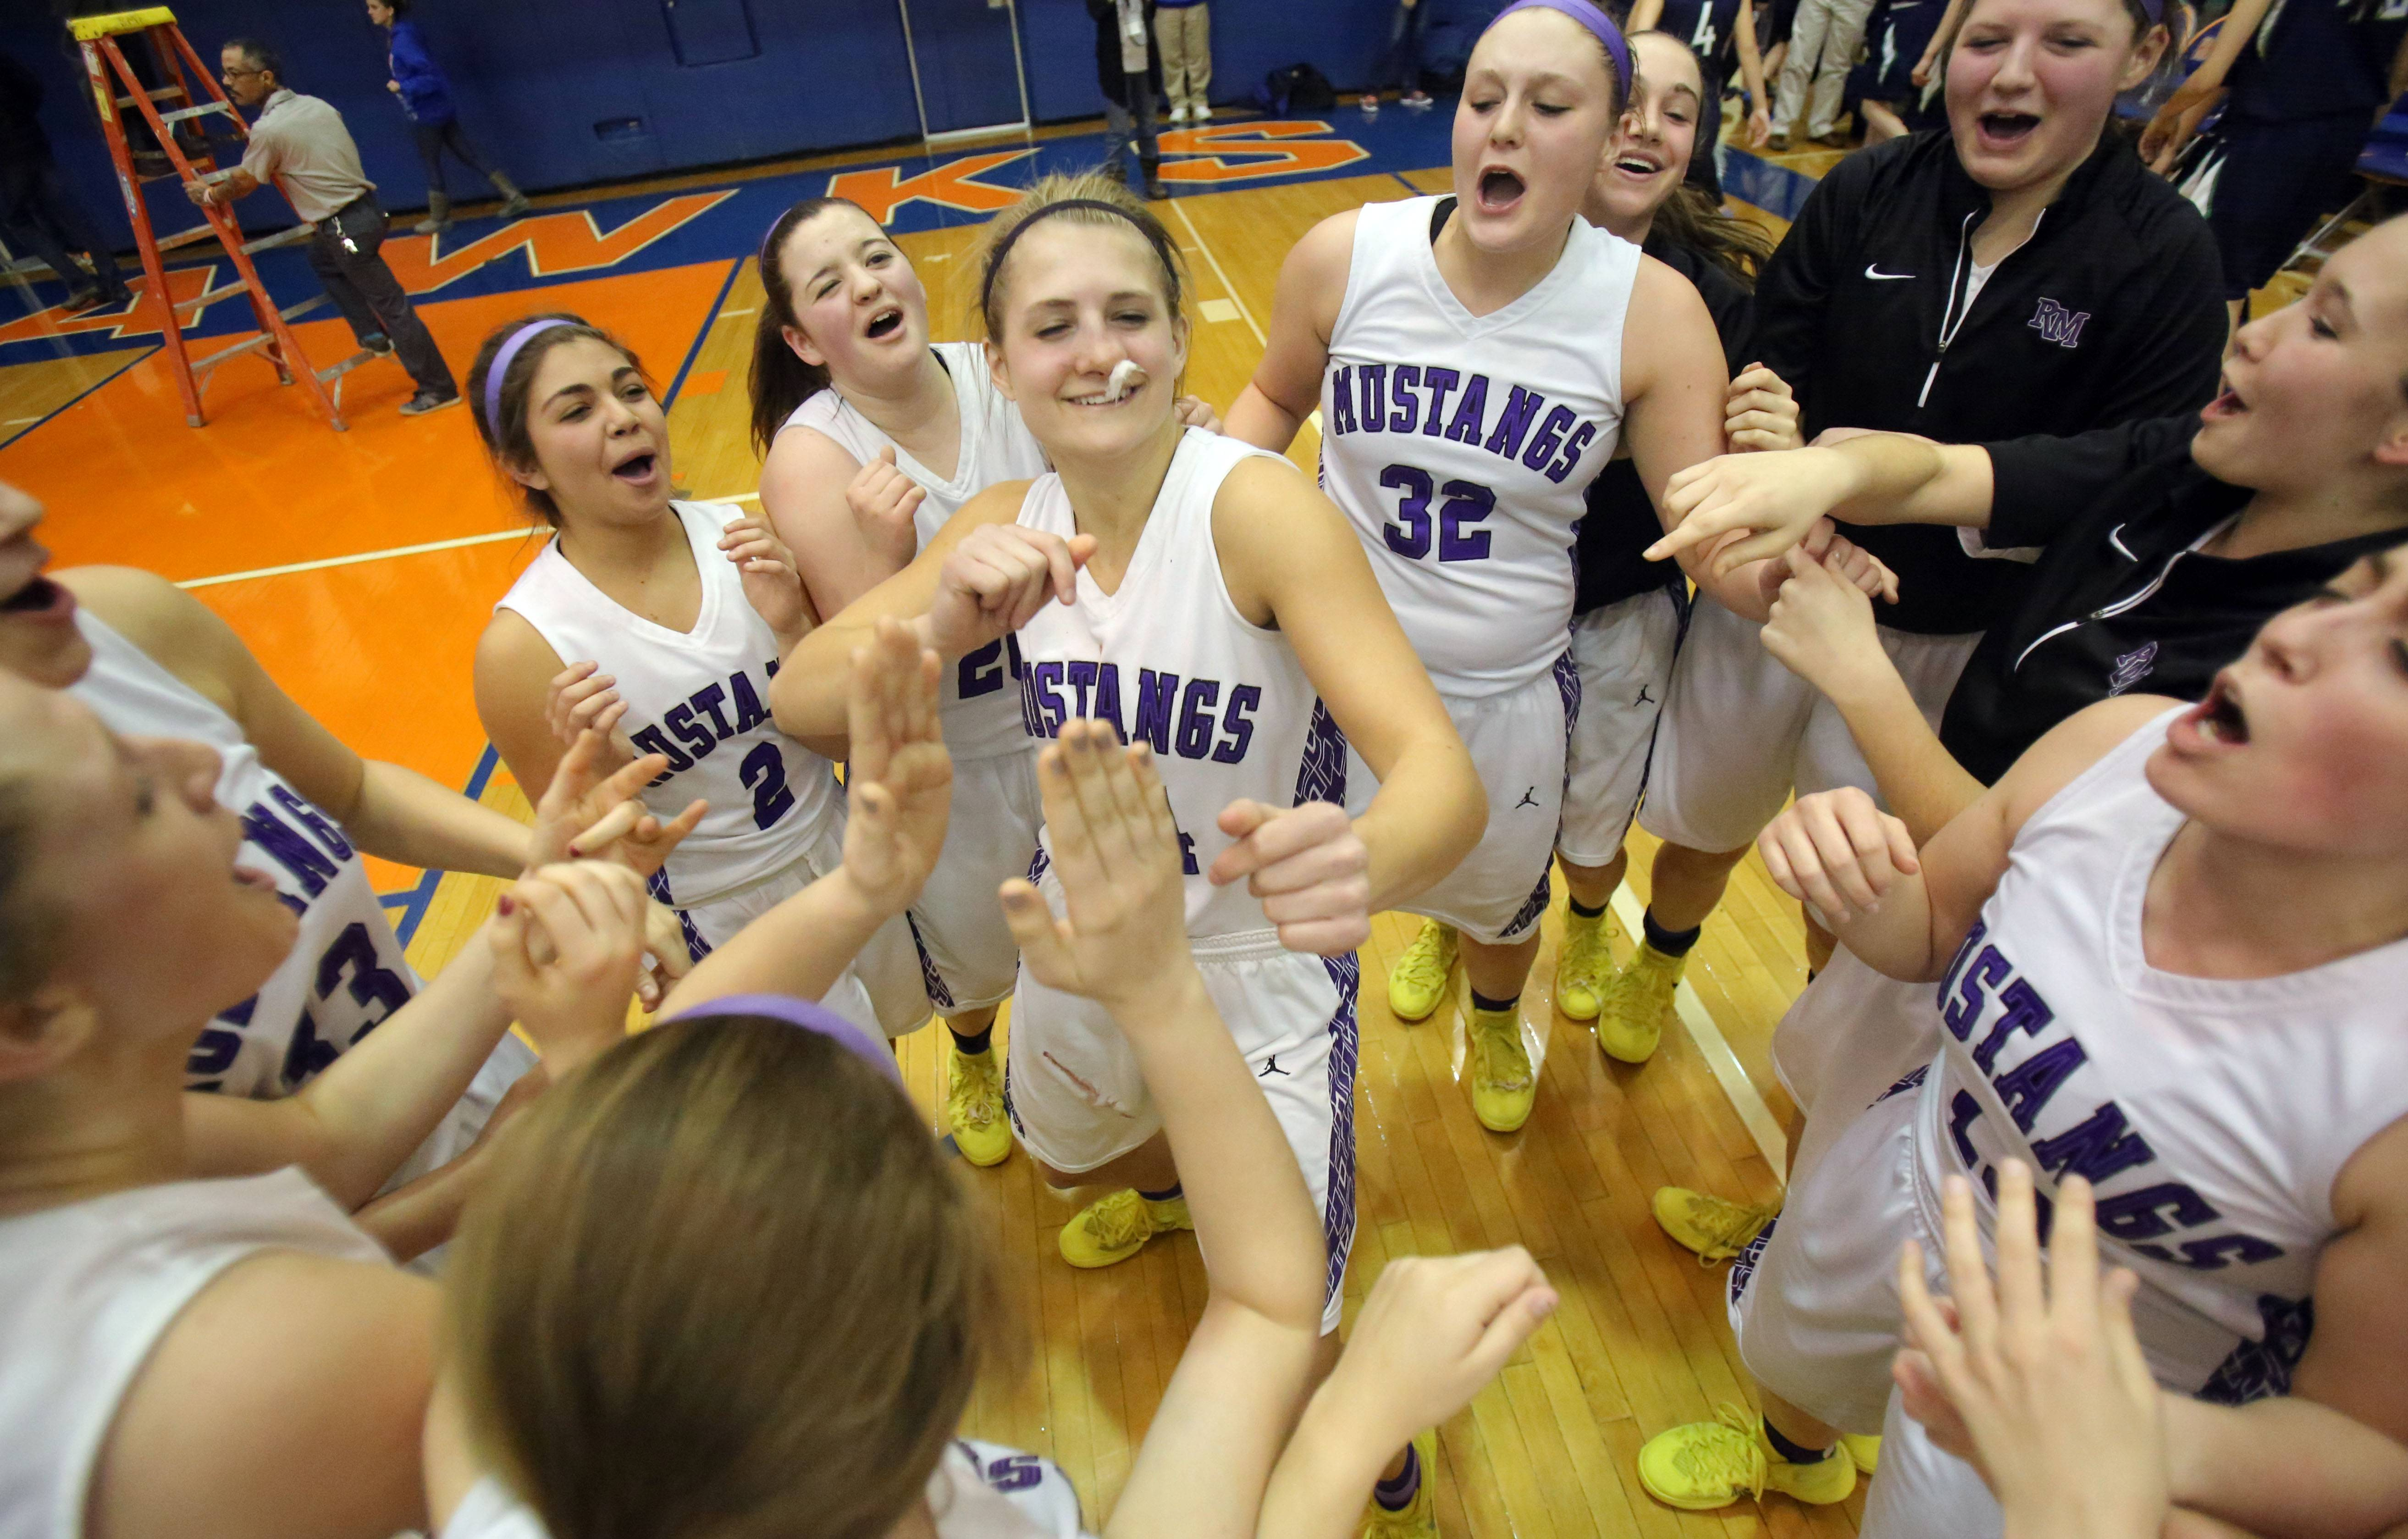 Rolling Meadows' Alexis Glasgow doesn't let a suspected broken nose prevent her from joining a victory dance following the Mustangs' 60-43 victory over New Trier in Class 4A supersectional play at Hoffman Estates on Monday.